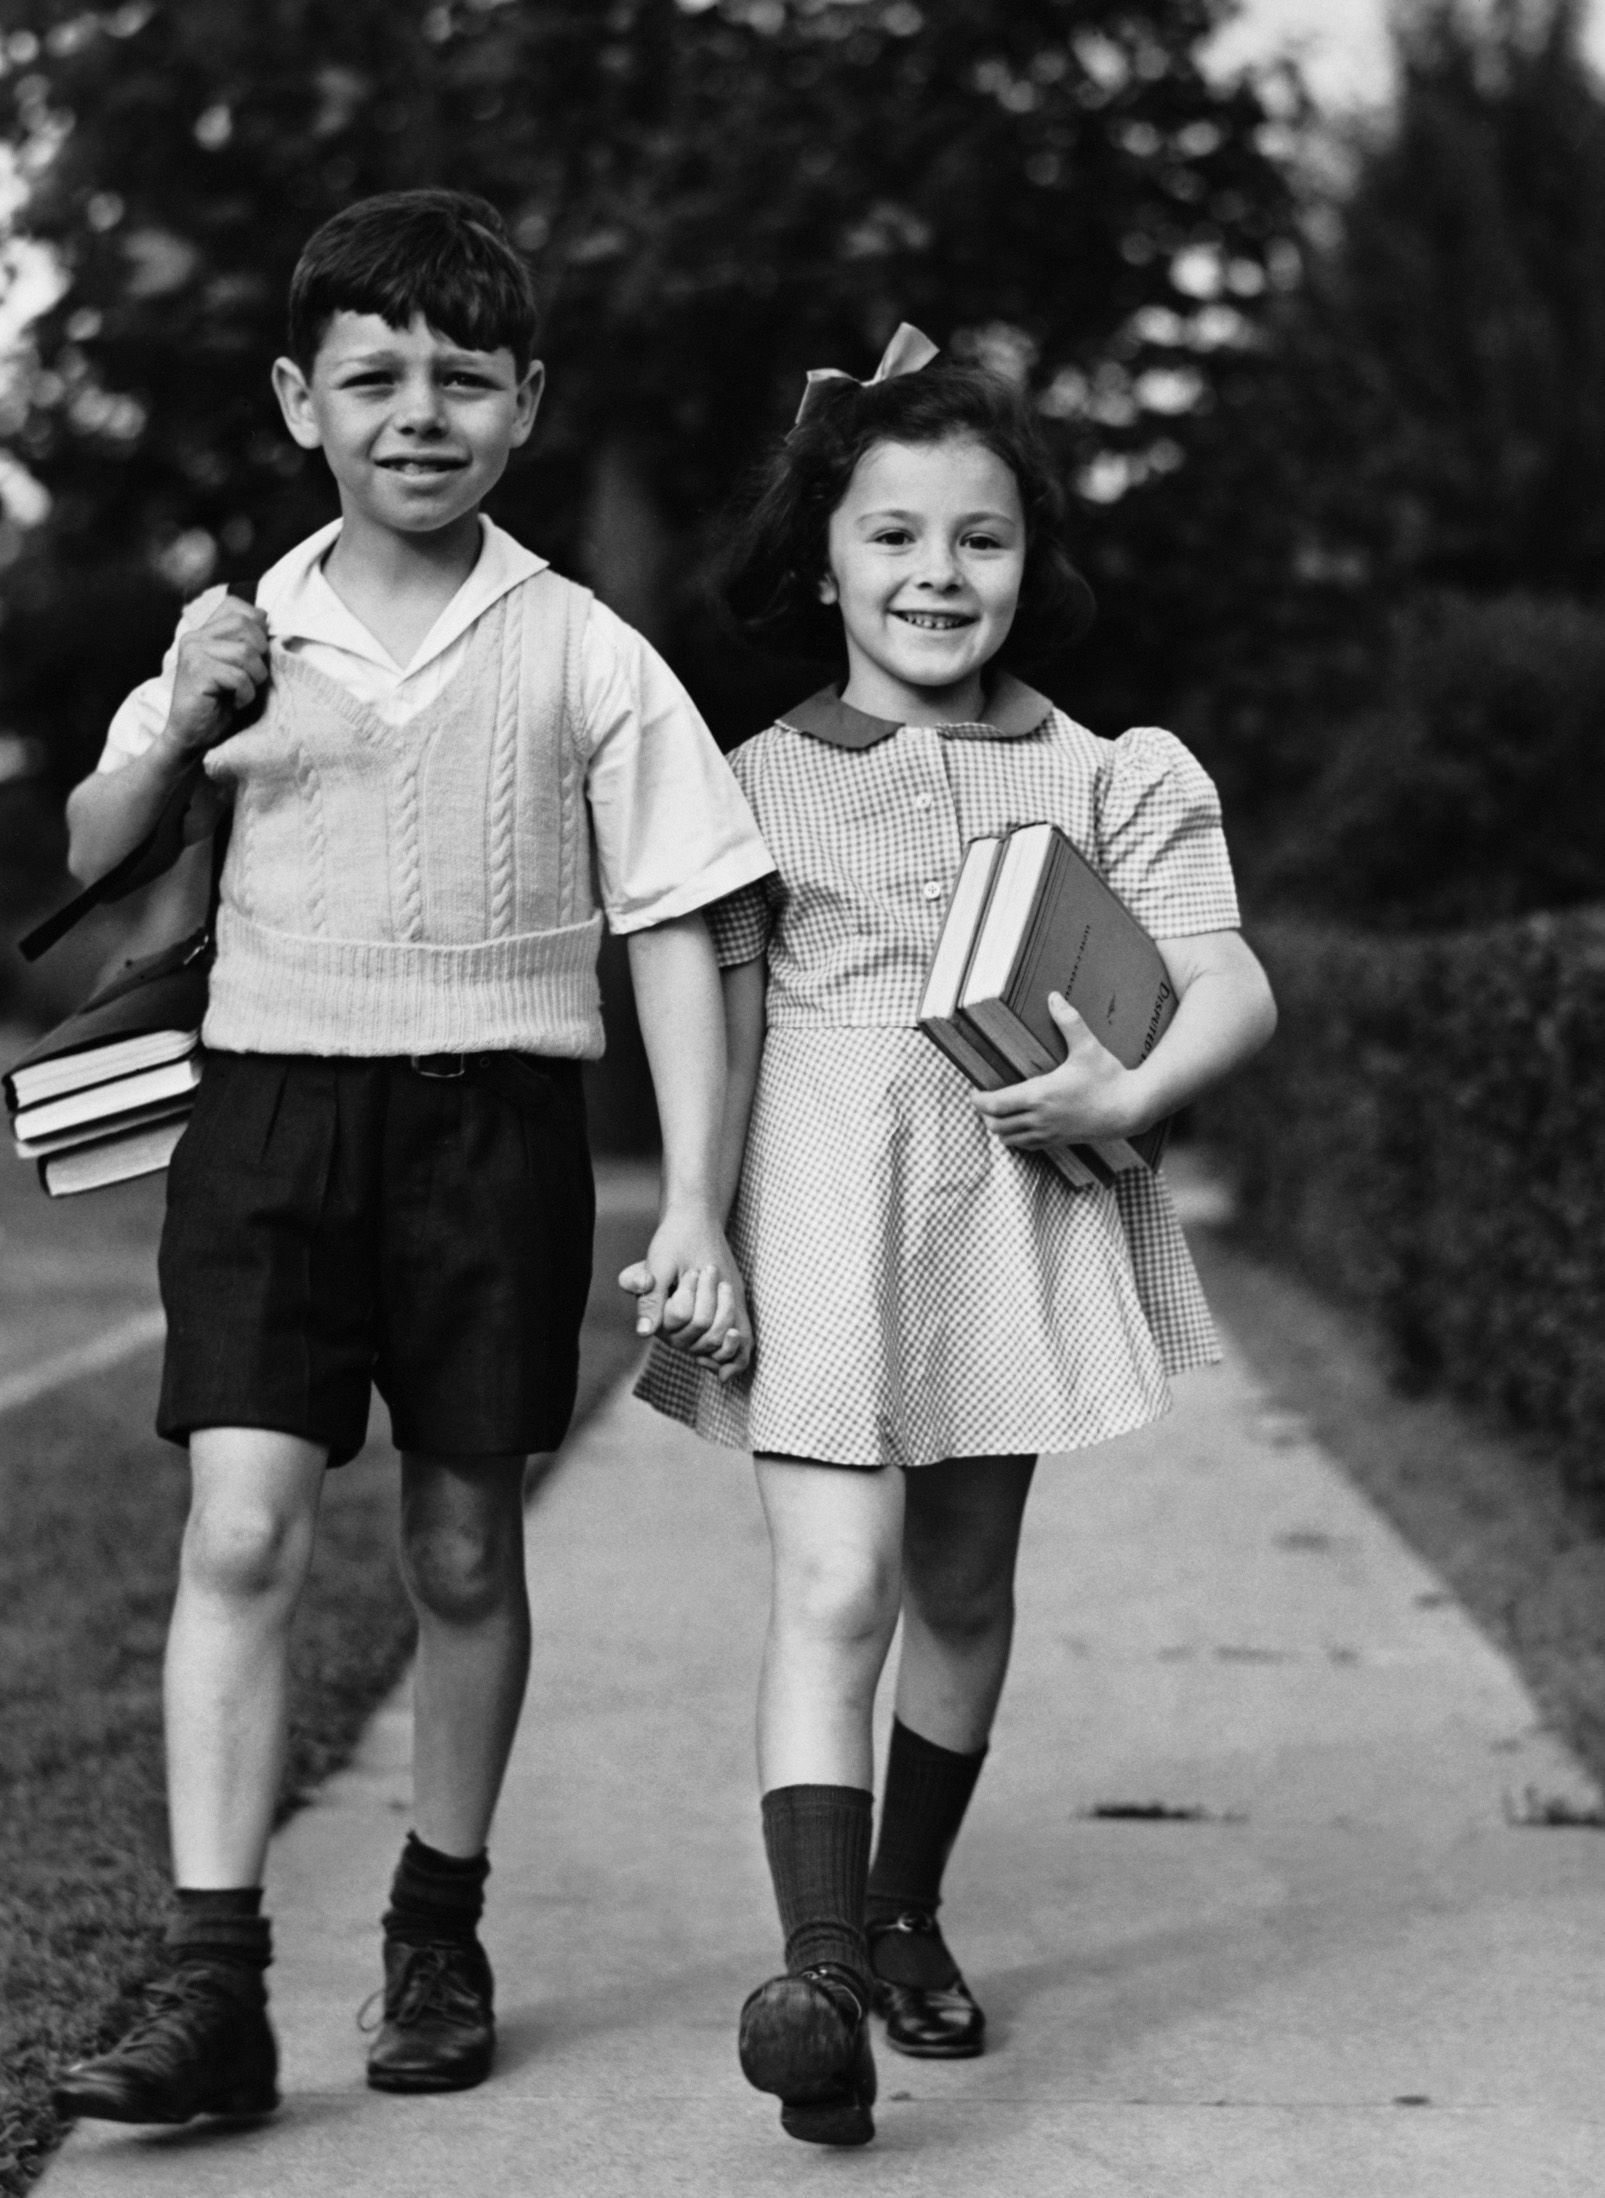 Tots walking home from school 1940s | School Bells are ...